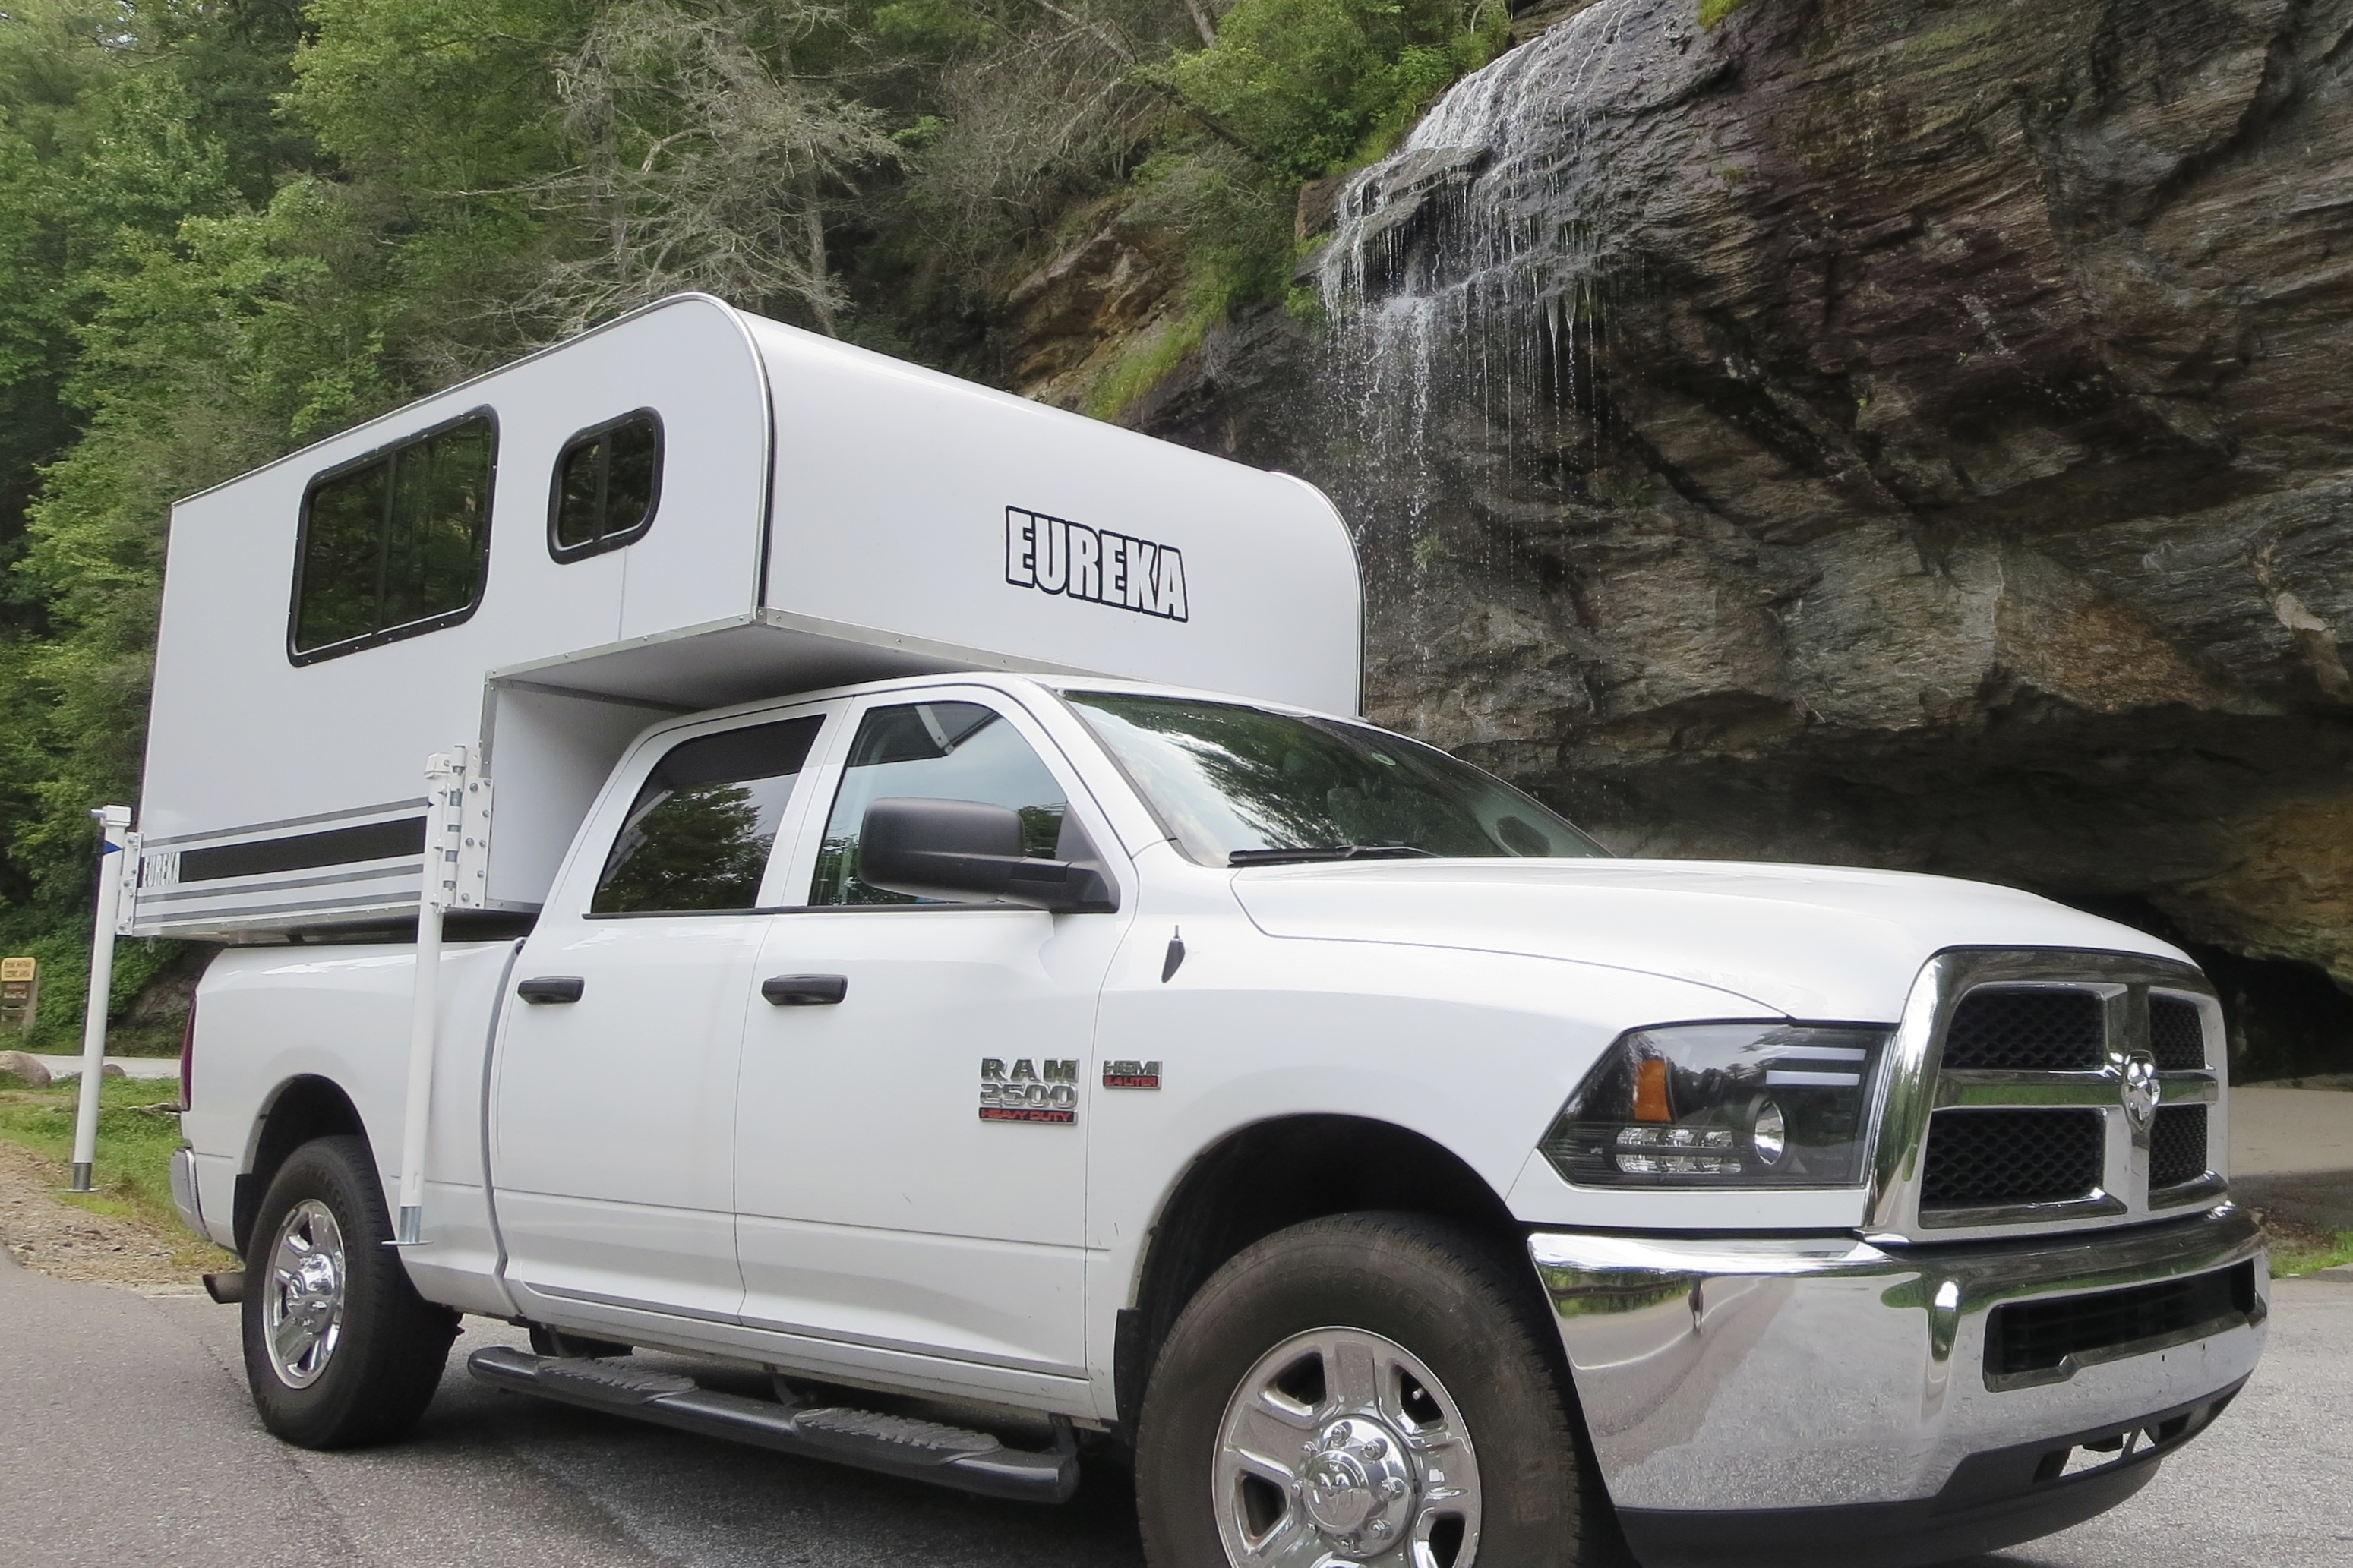 Our 2018 Eureka Truck Camper---The Last of Its Kind | Truck